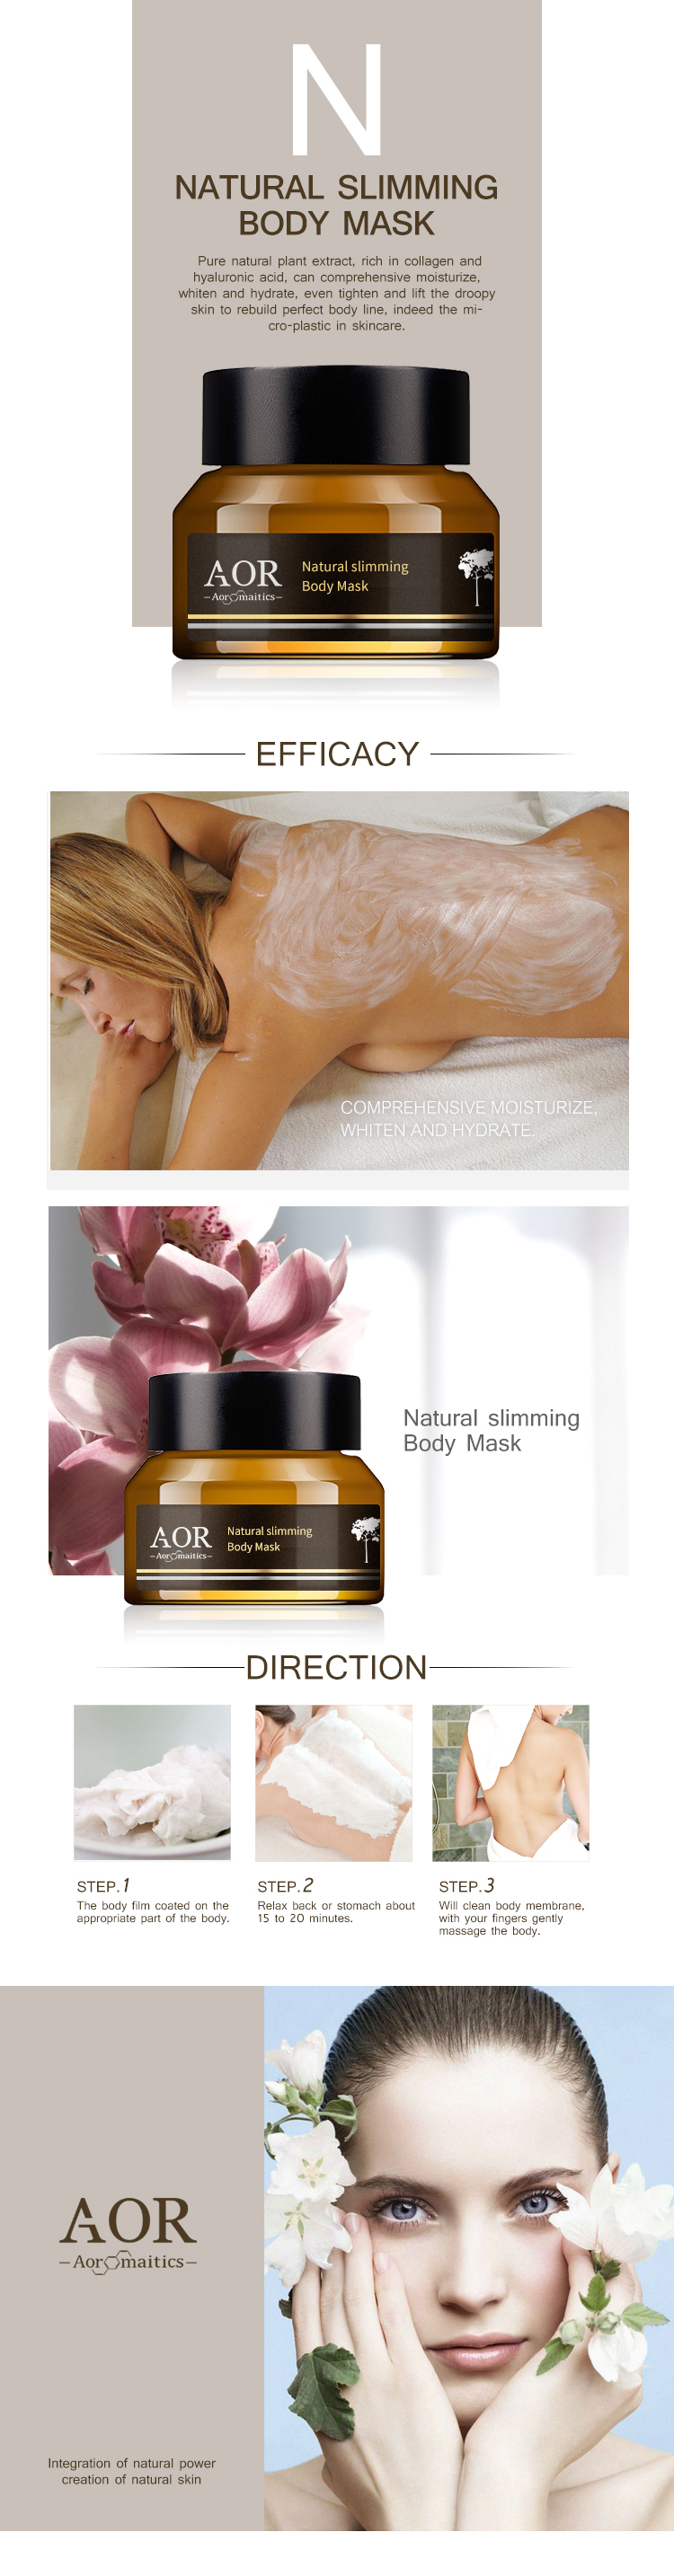 OEM/ODM Natural slimming Body Mask for Whitening Smoothing Firming Hydrating